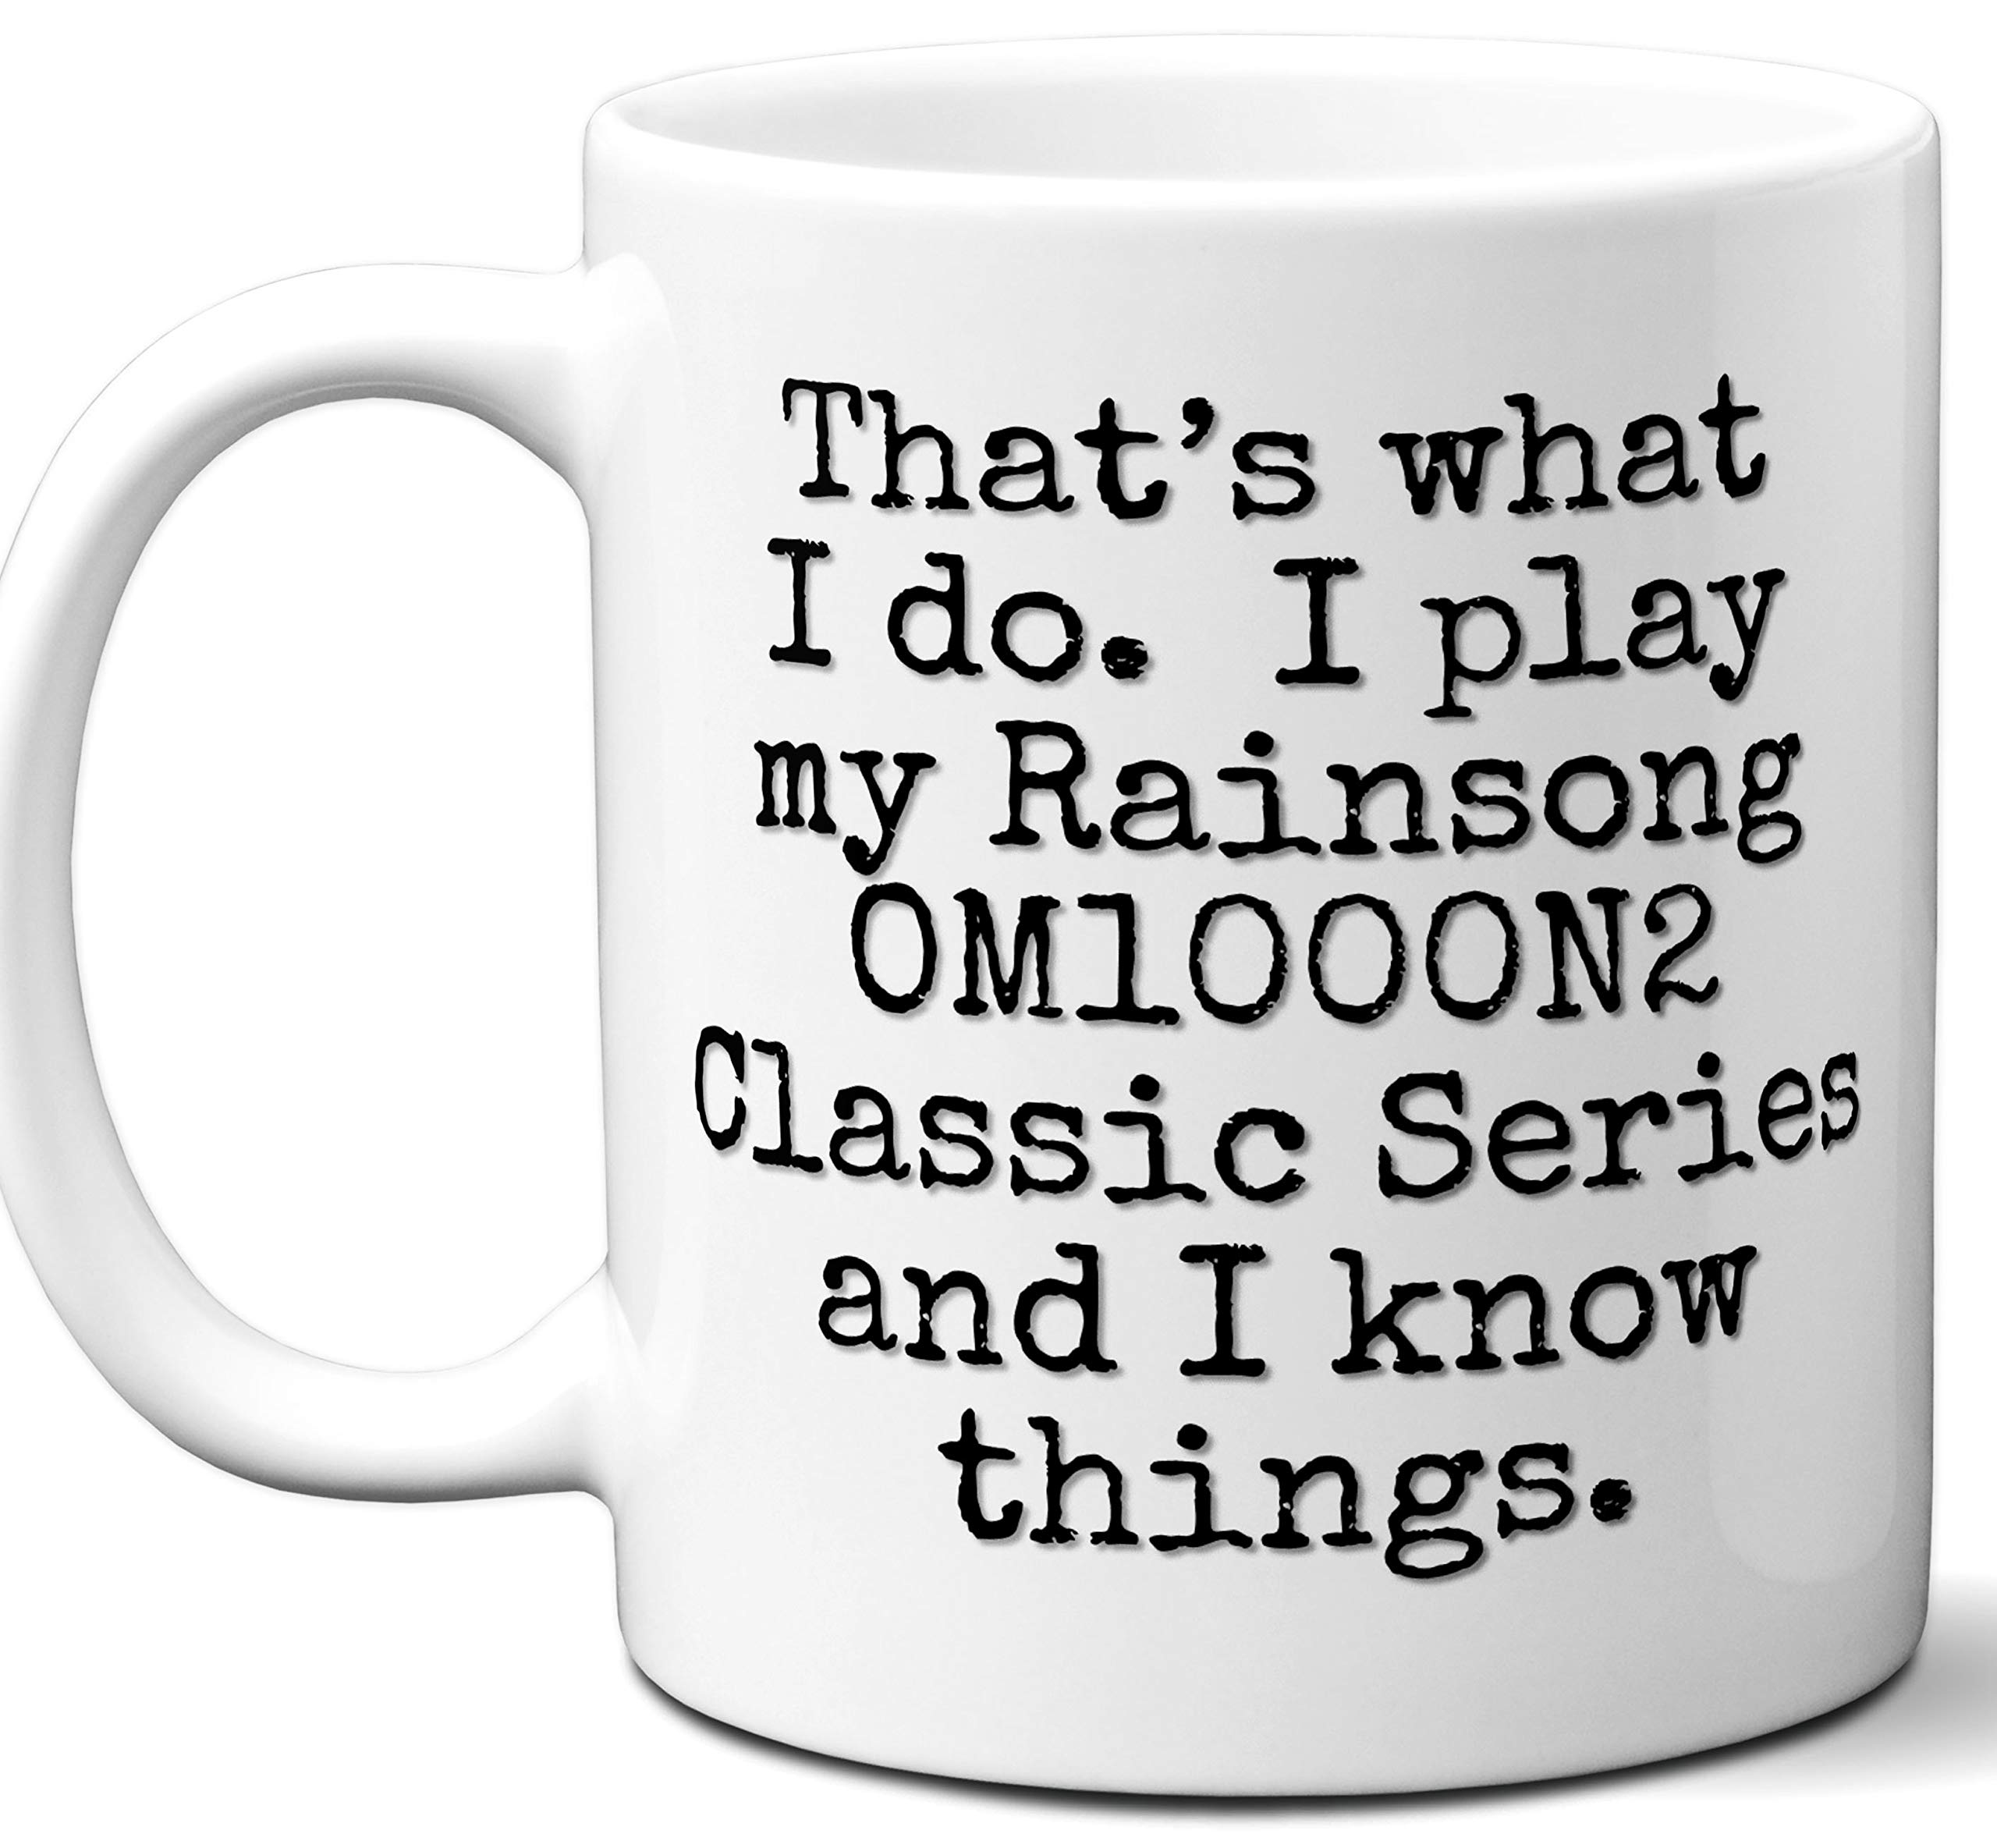 Guitar Gifts Mug. Rainsong OM1000N2 Classic Series Guitar Players Lover Accessories Music Teacher Lover Him Her Funny Dad Men Women Card Pick Musician Acoustic Unique by Ombura